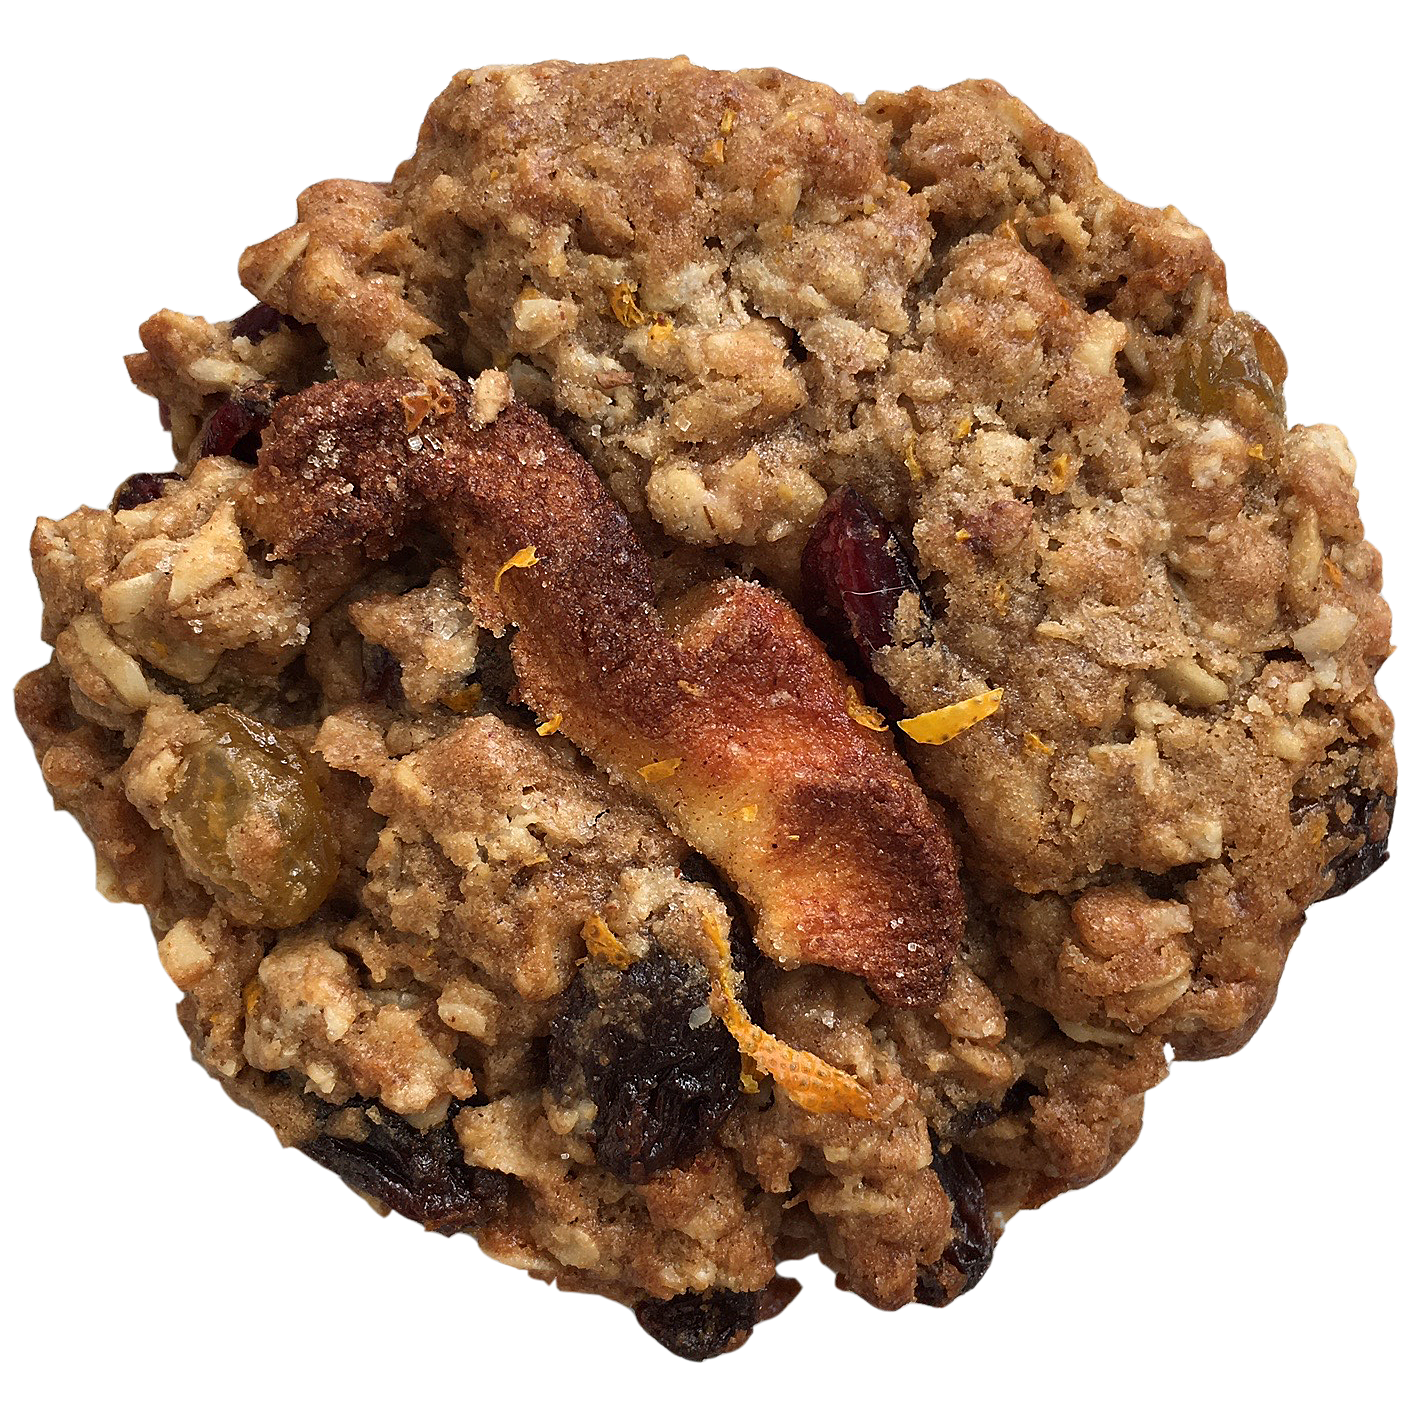 WHEN DORIS GETS HER OATS (phase one, dig it)  seasonal flavors : oats, carmelized apple, burnt orange & candied walnuts